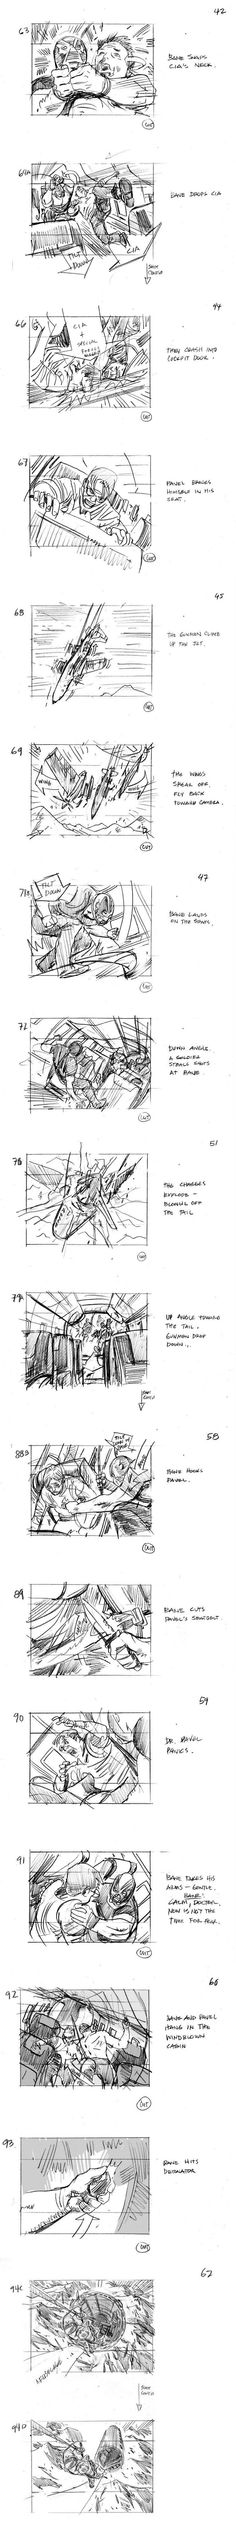 Dark Knight Storyboards